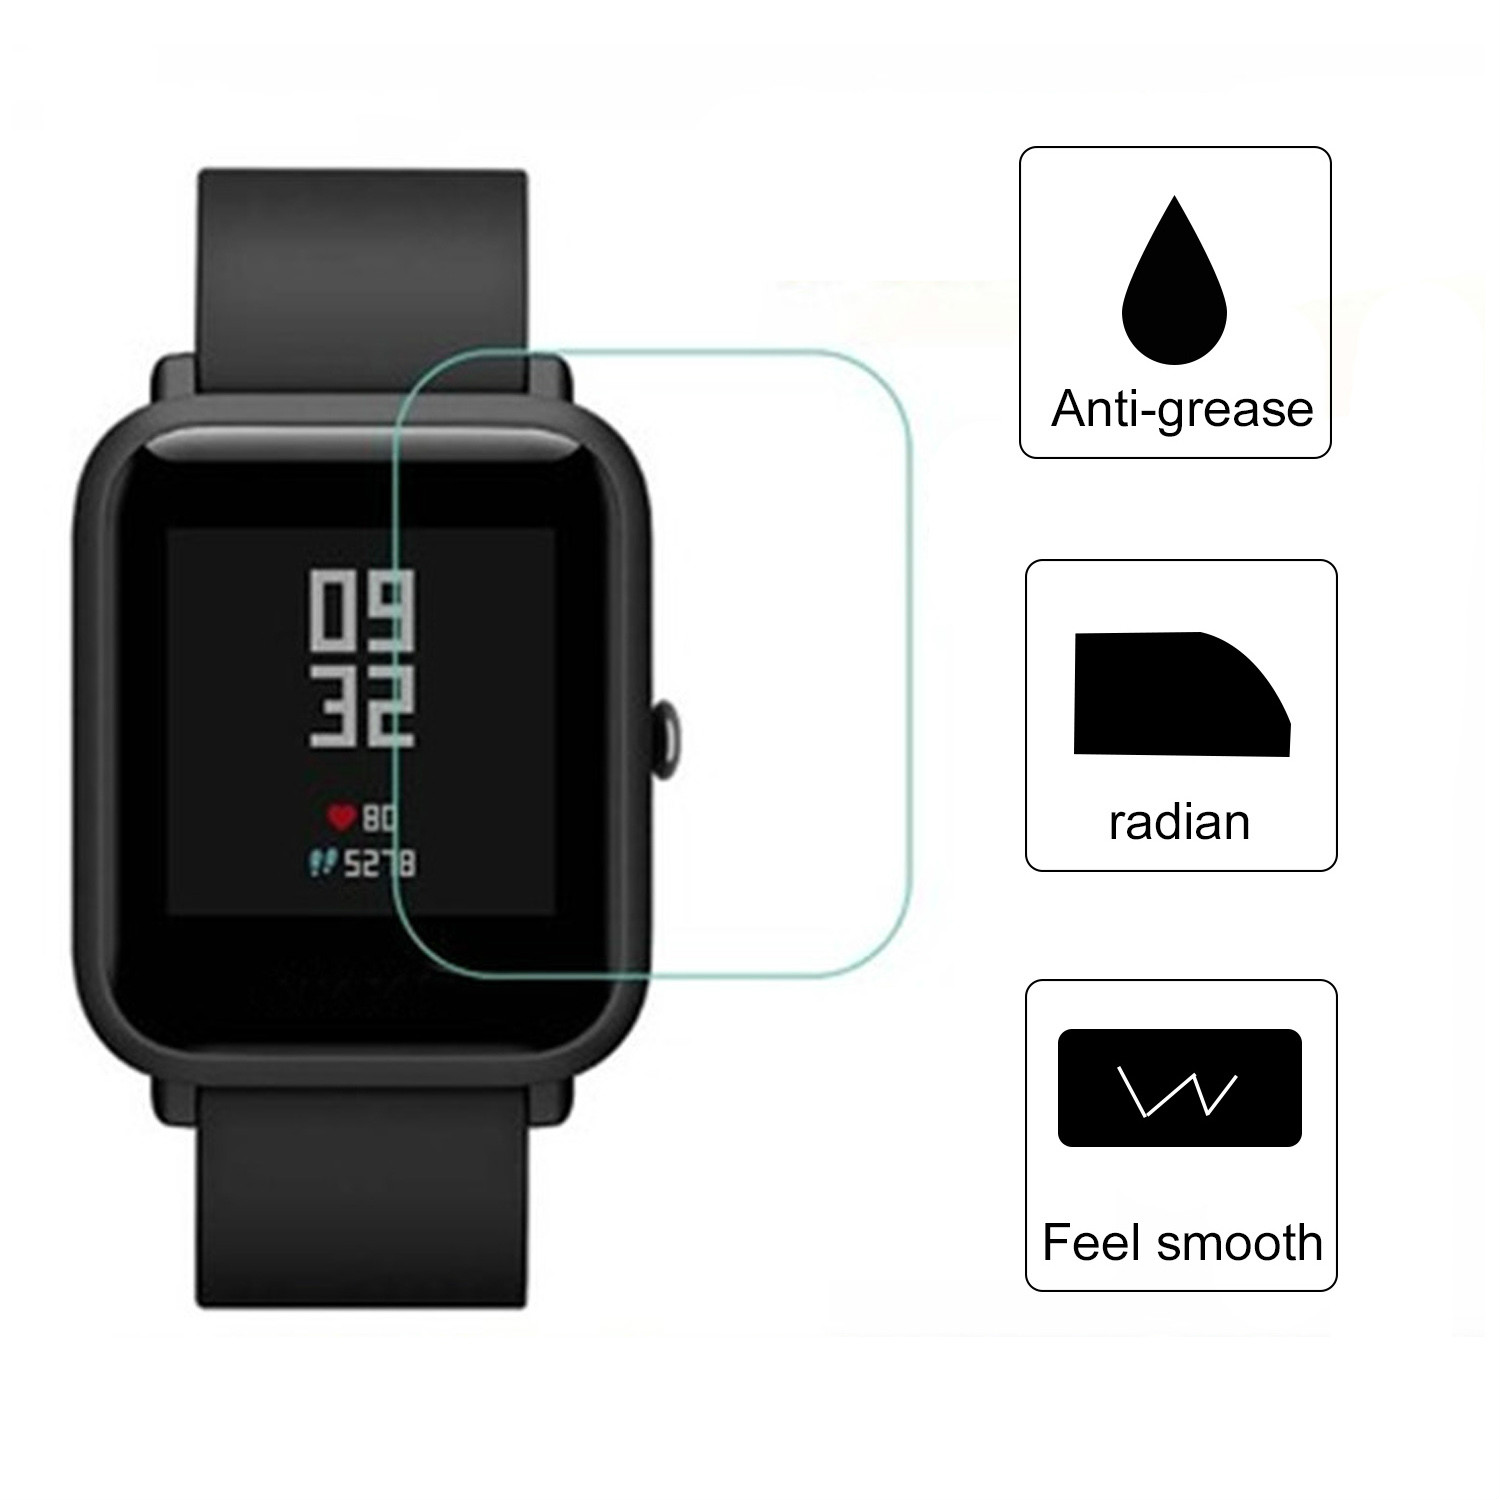 Protector-Film-Cover Smart-Watch-Accessories Huami Amazfit Xiaomi HD TPU 1pcs for Bip